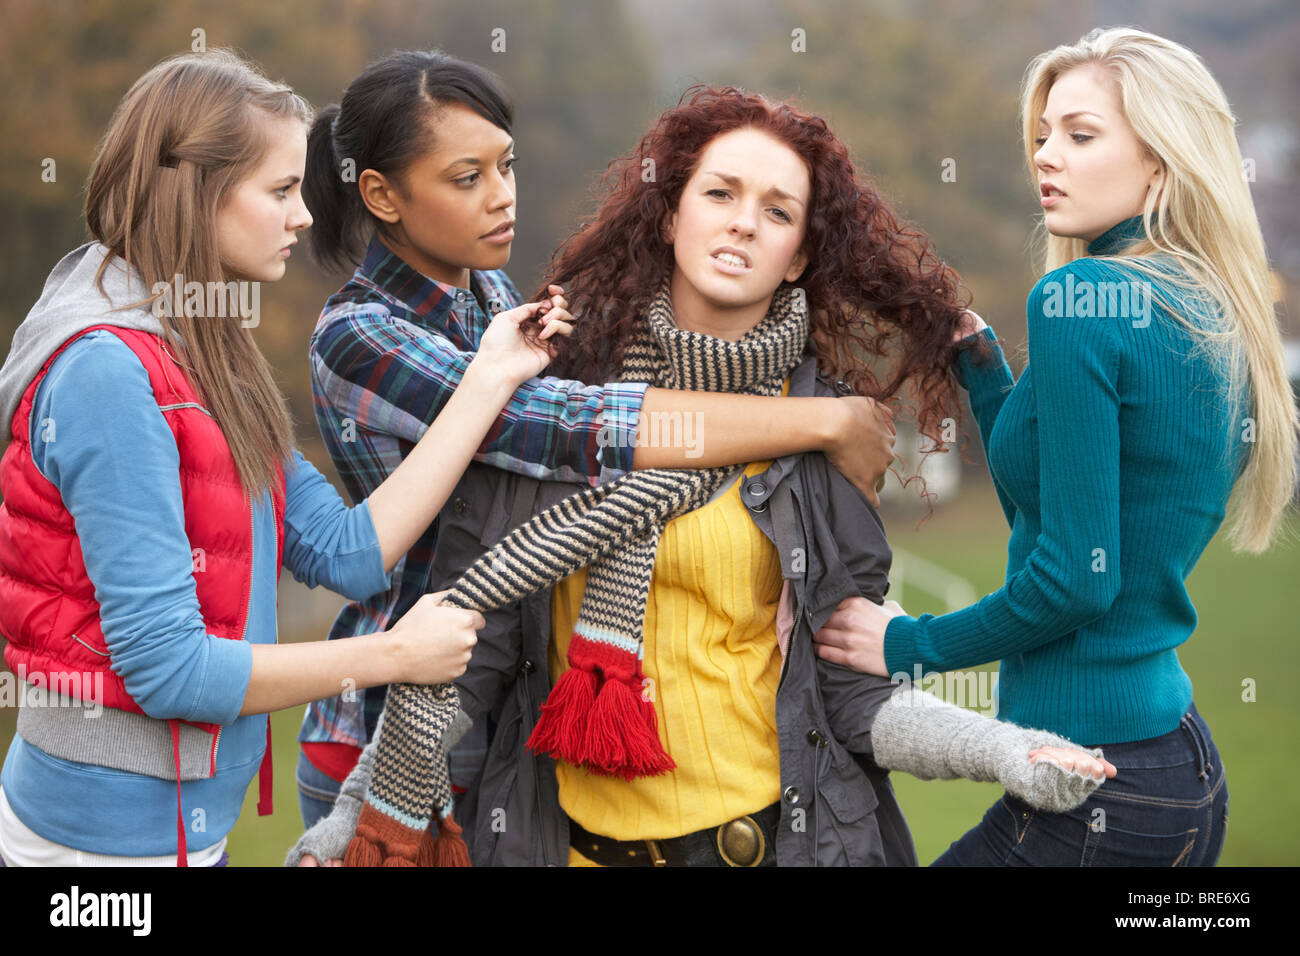 Group Of Female Teenagers Bullying Girl Stock Photo